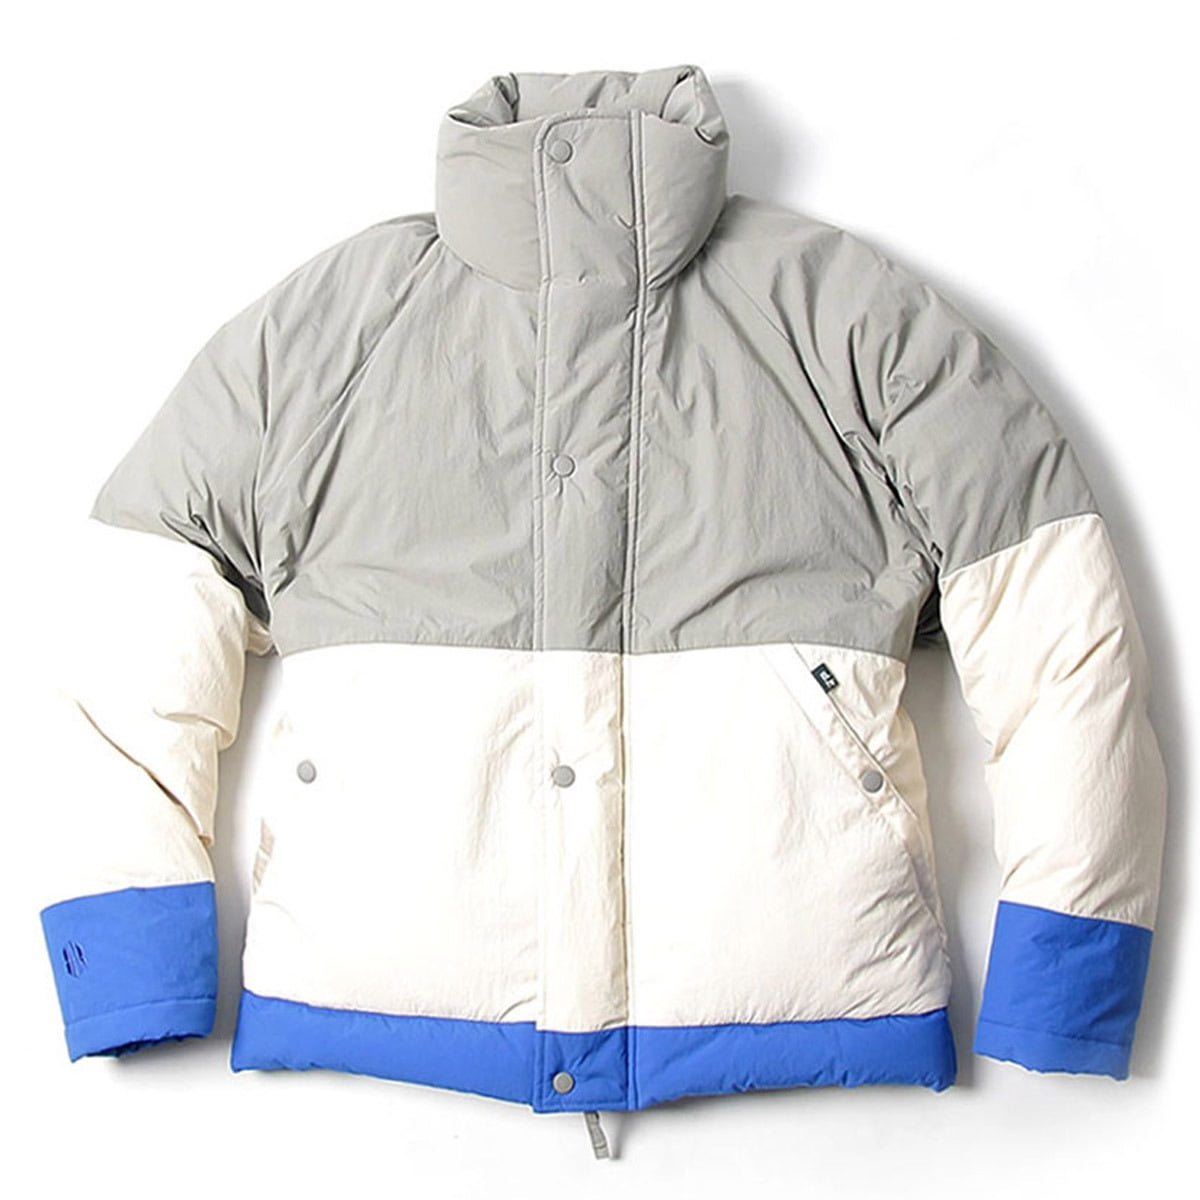 [BEHEAVYER] BHR POLAR BEAR Vol.2 'GREY'